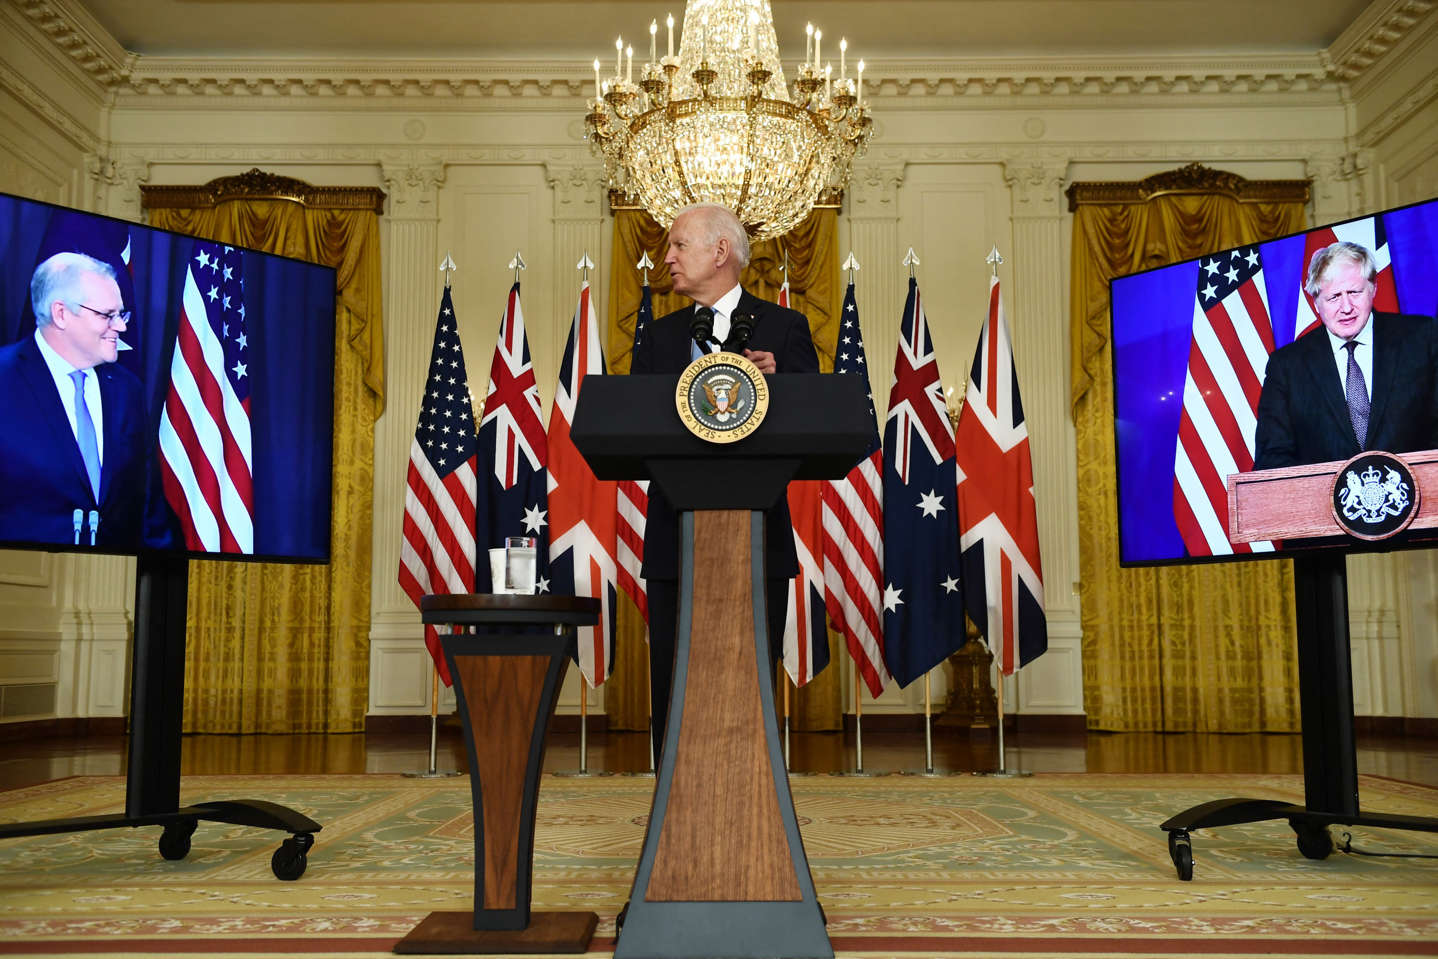 Boris Johnson et al. in a room: President Joe Biden participates in a virtual press conference to announce trilateral defense partnership AUKUS, with British Prime Minister Boris Johnson (R) and Australian Prime Minister Scott Morrison, in the East Room of the White House in Washington, D.C, on September 15, 2021.